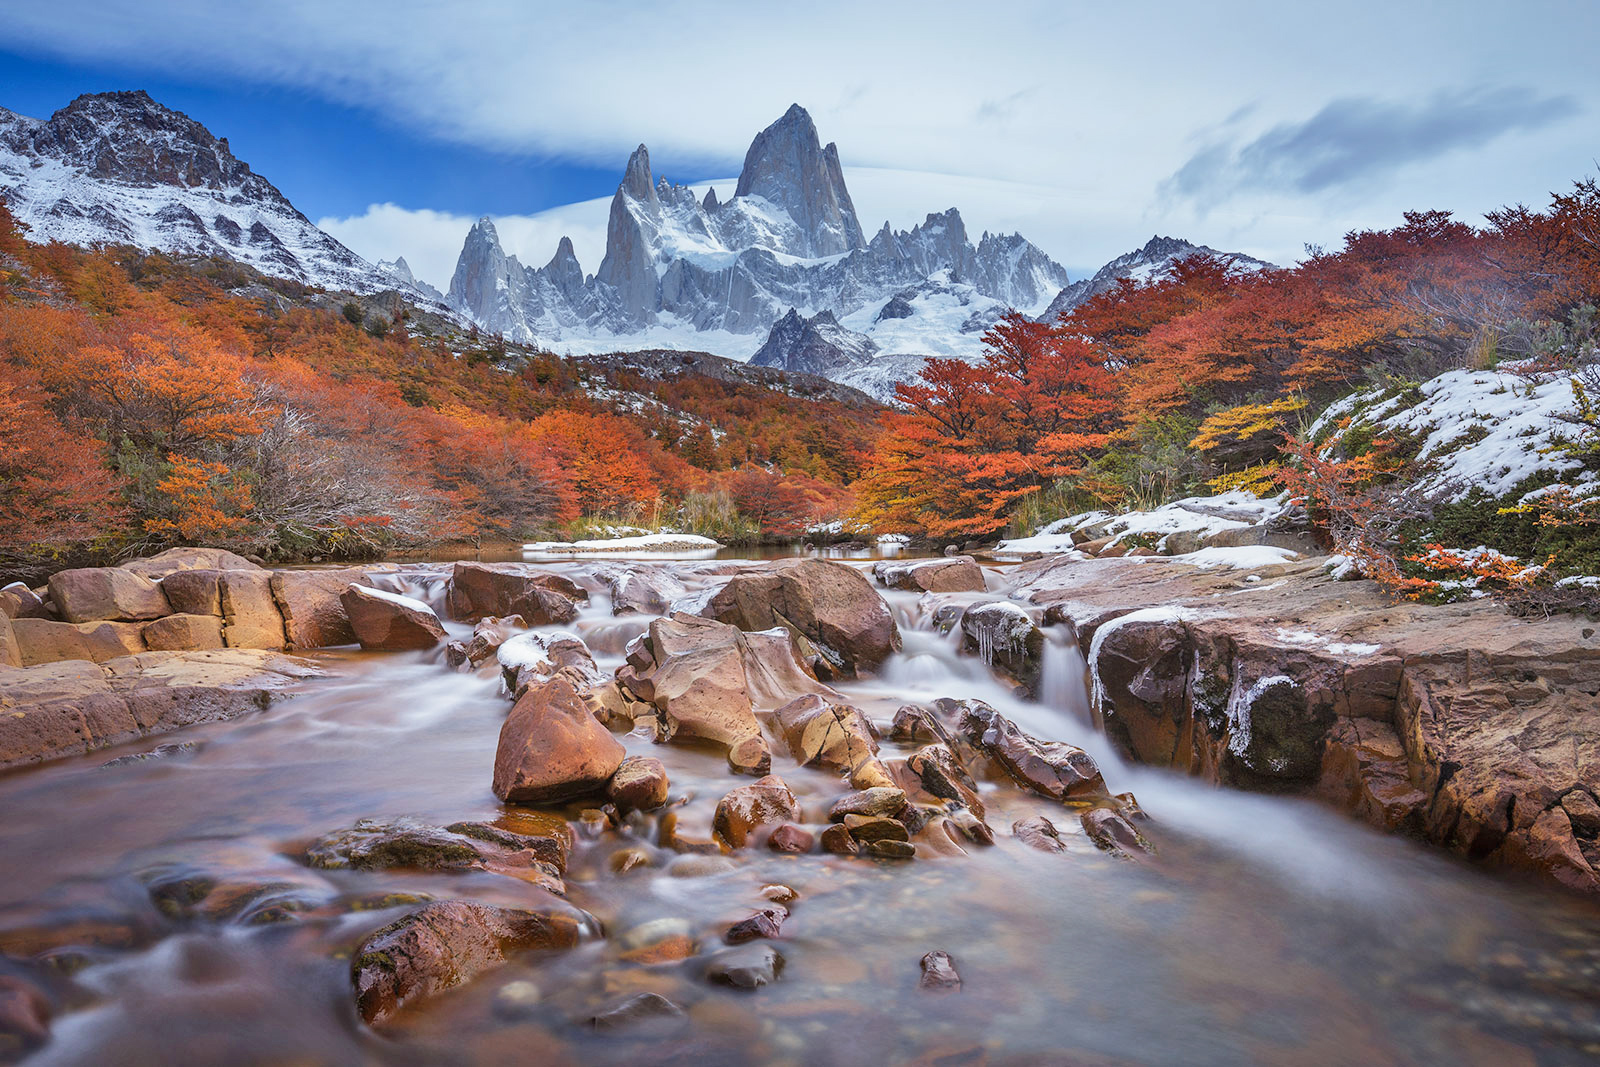 Patagonia Photography Workshop in Autumn